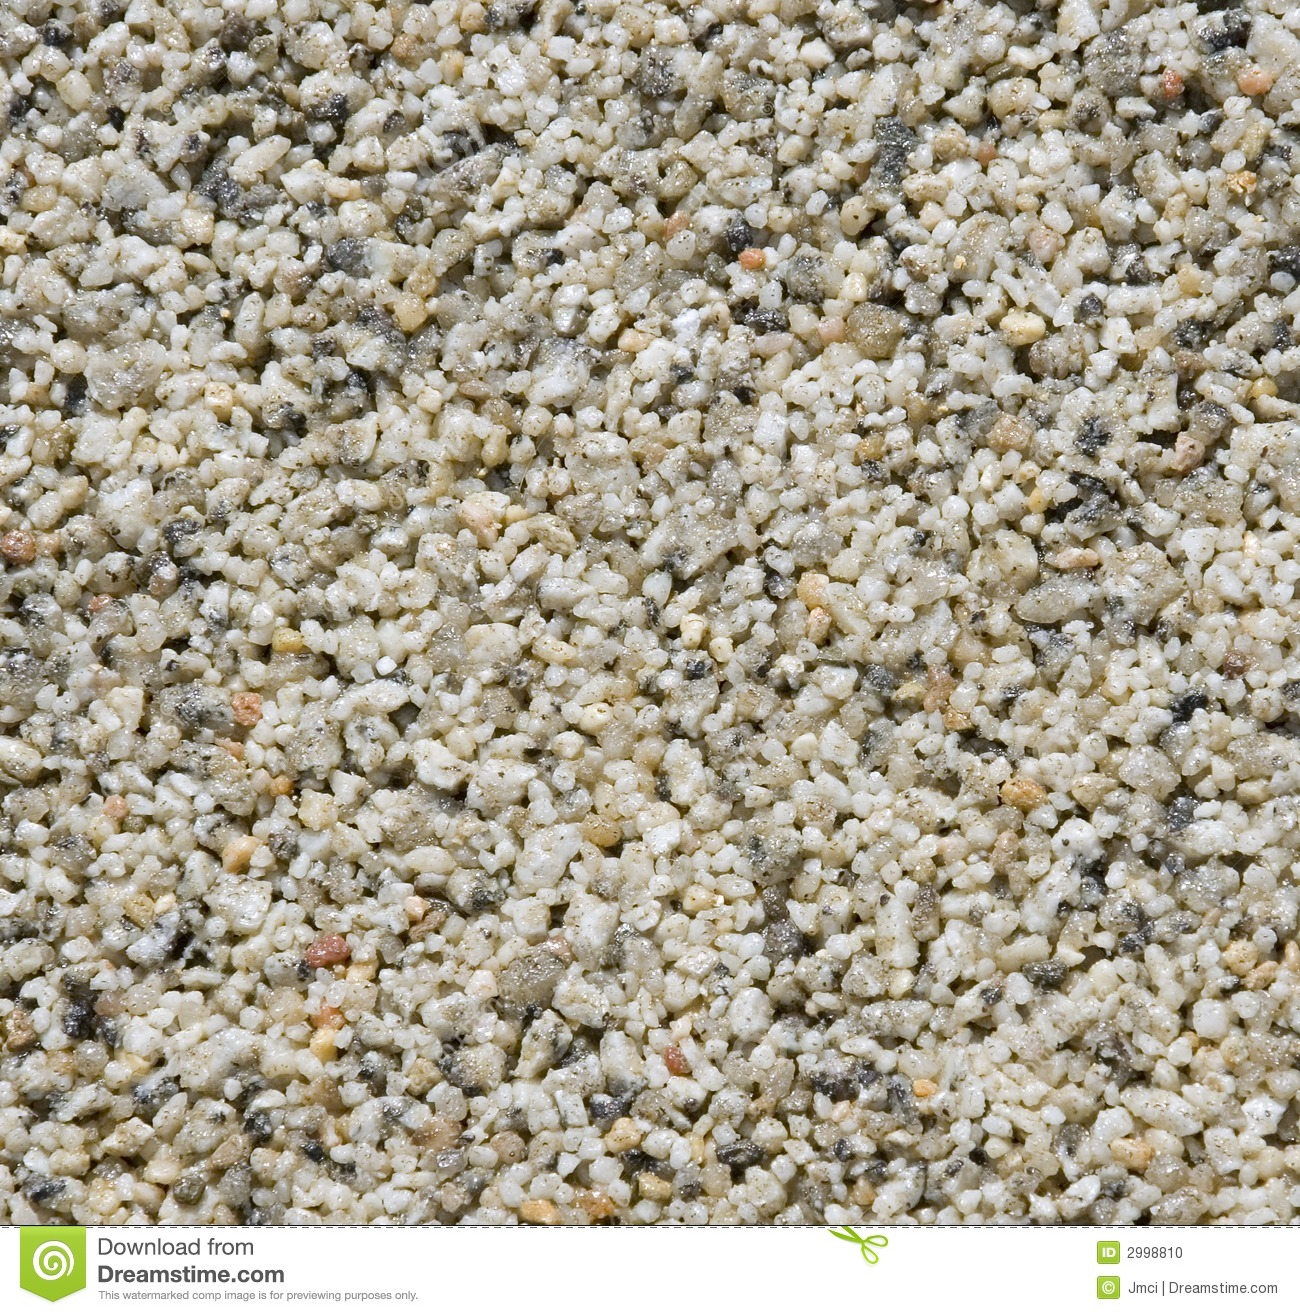 Quartz sand grains stock photo  Image of glint, specular